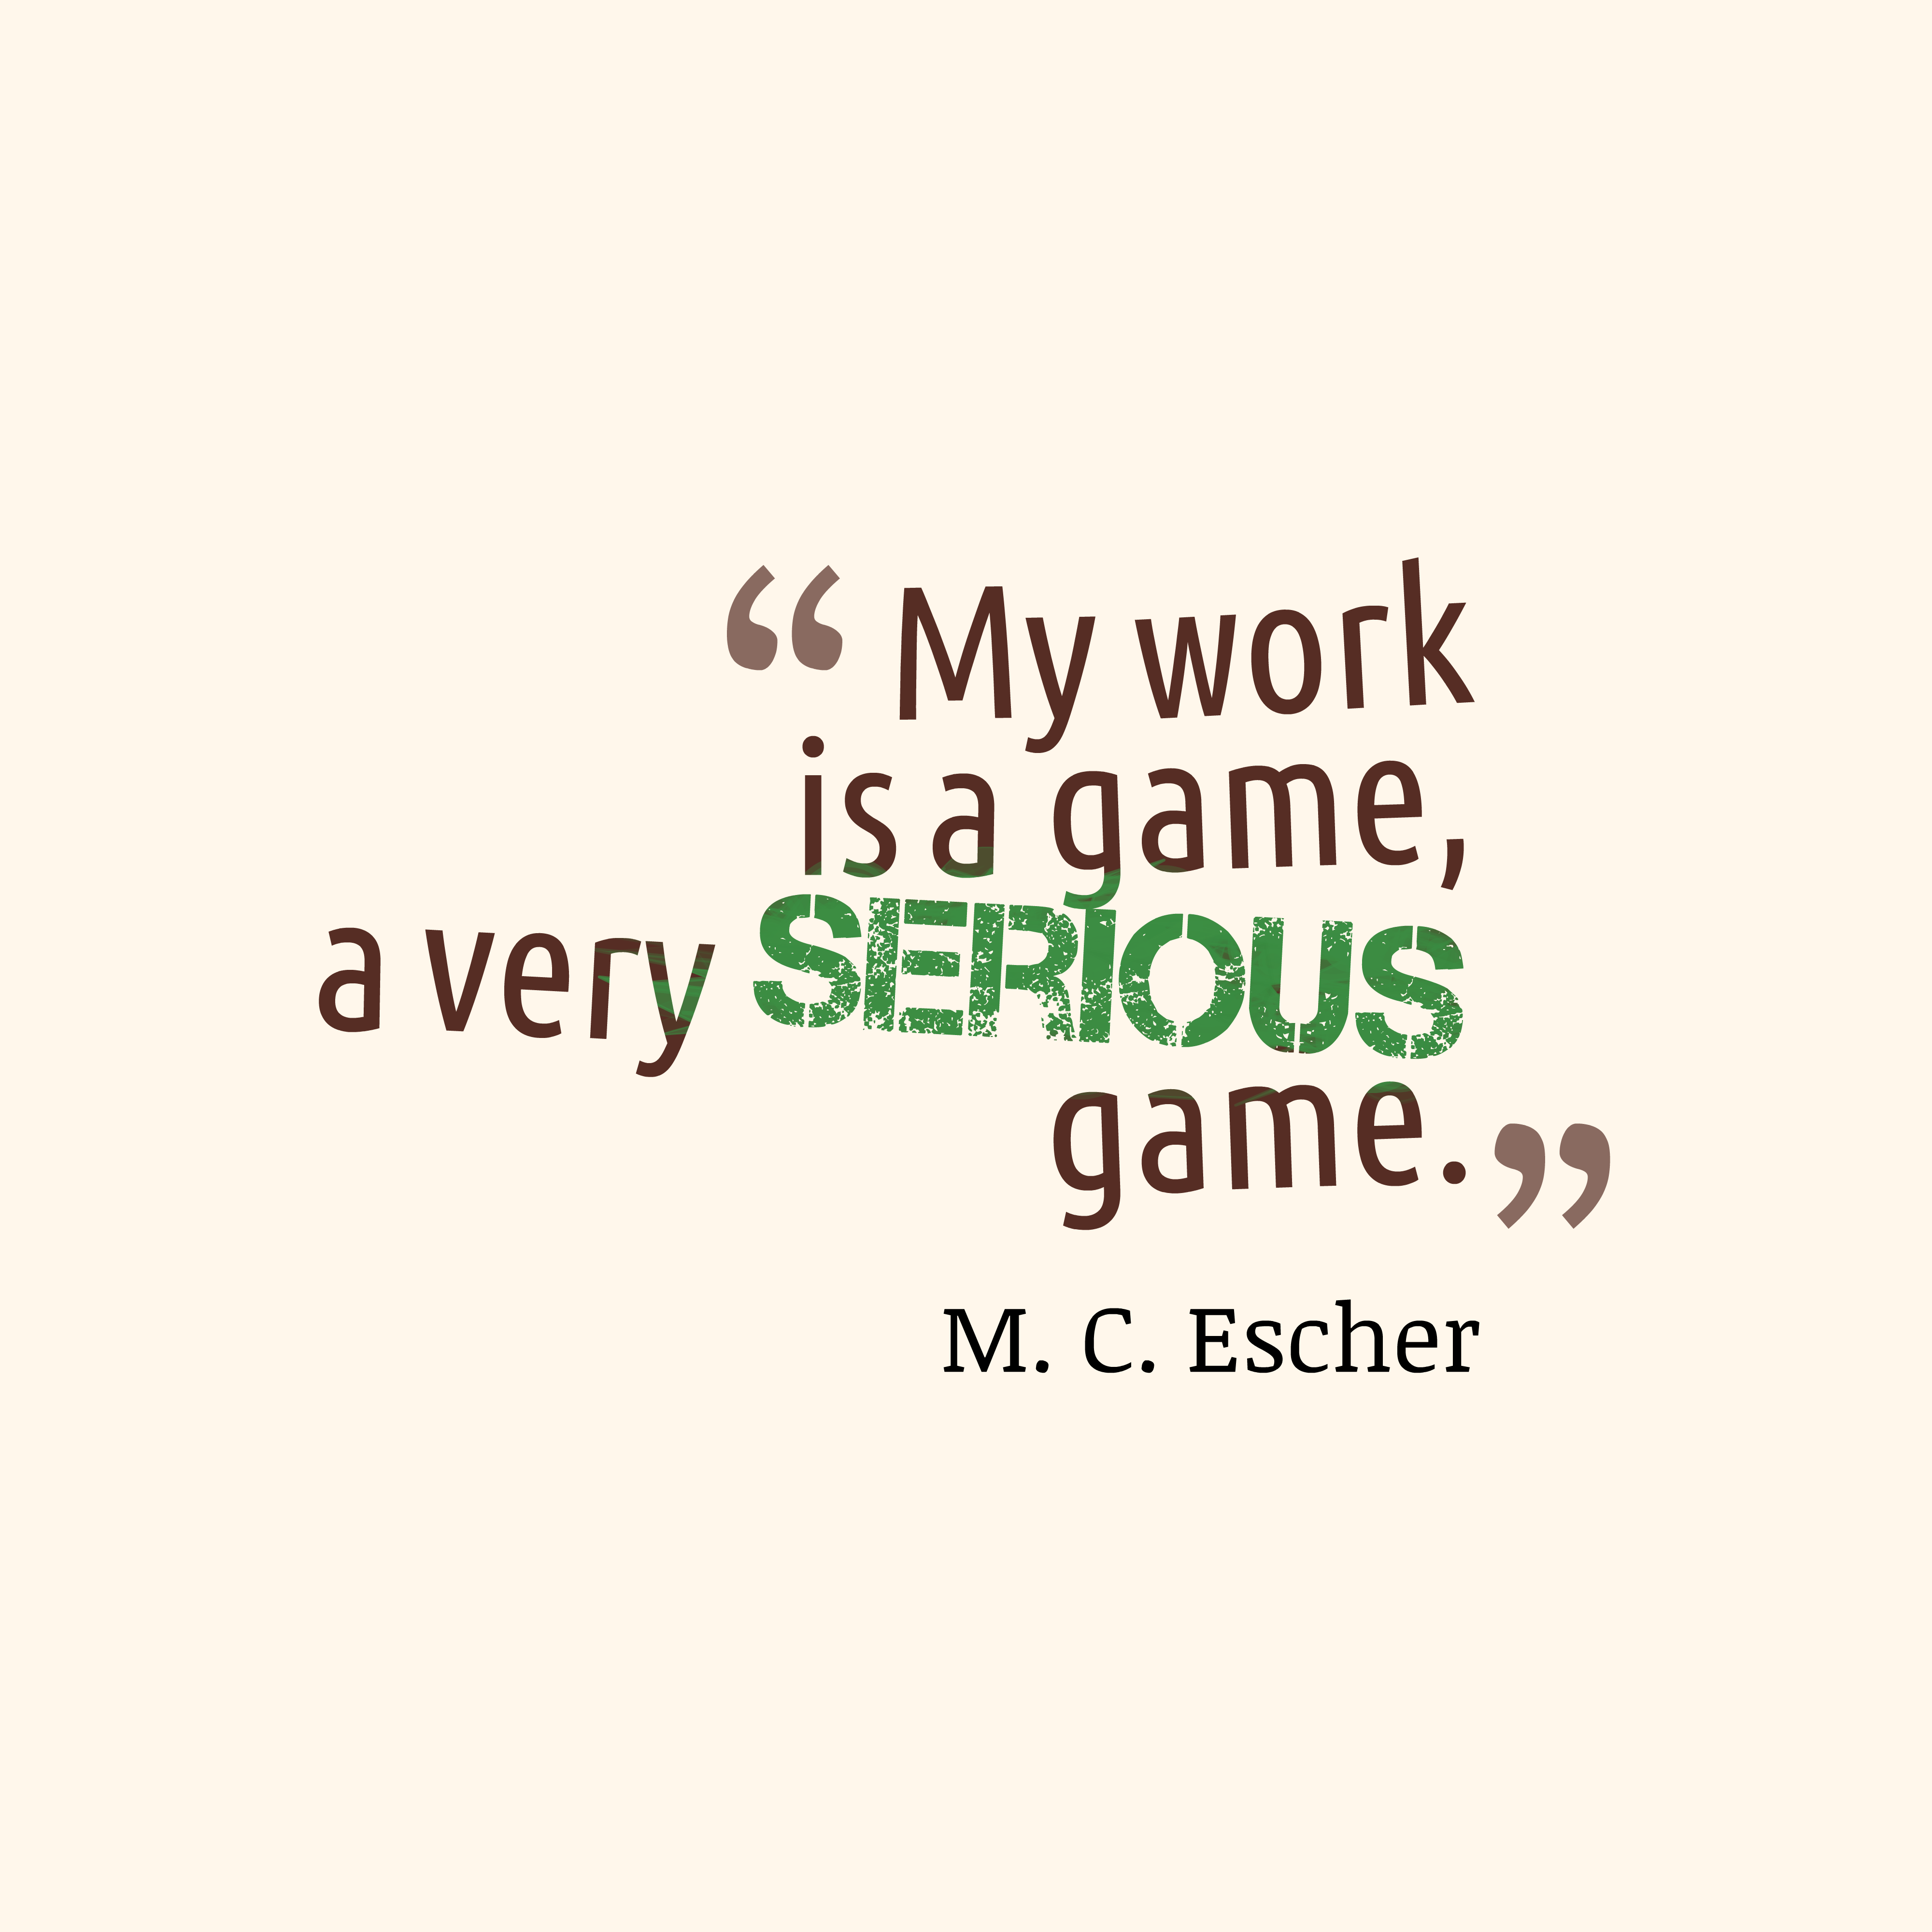 Quotes For Work A Serious Game Game Serious  Funny & Cool Quotes  Pinterest